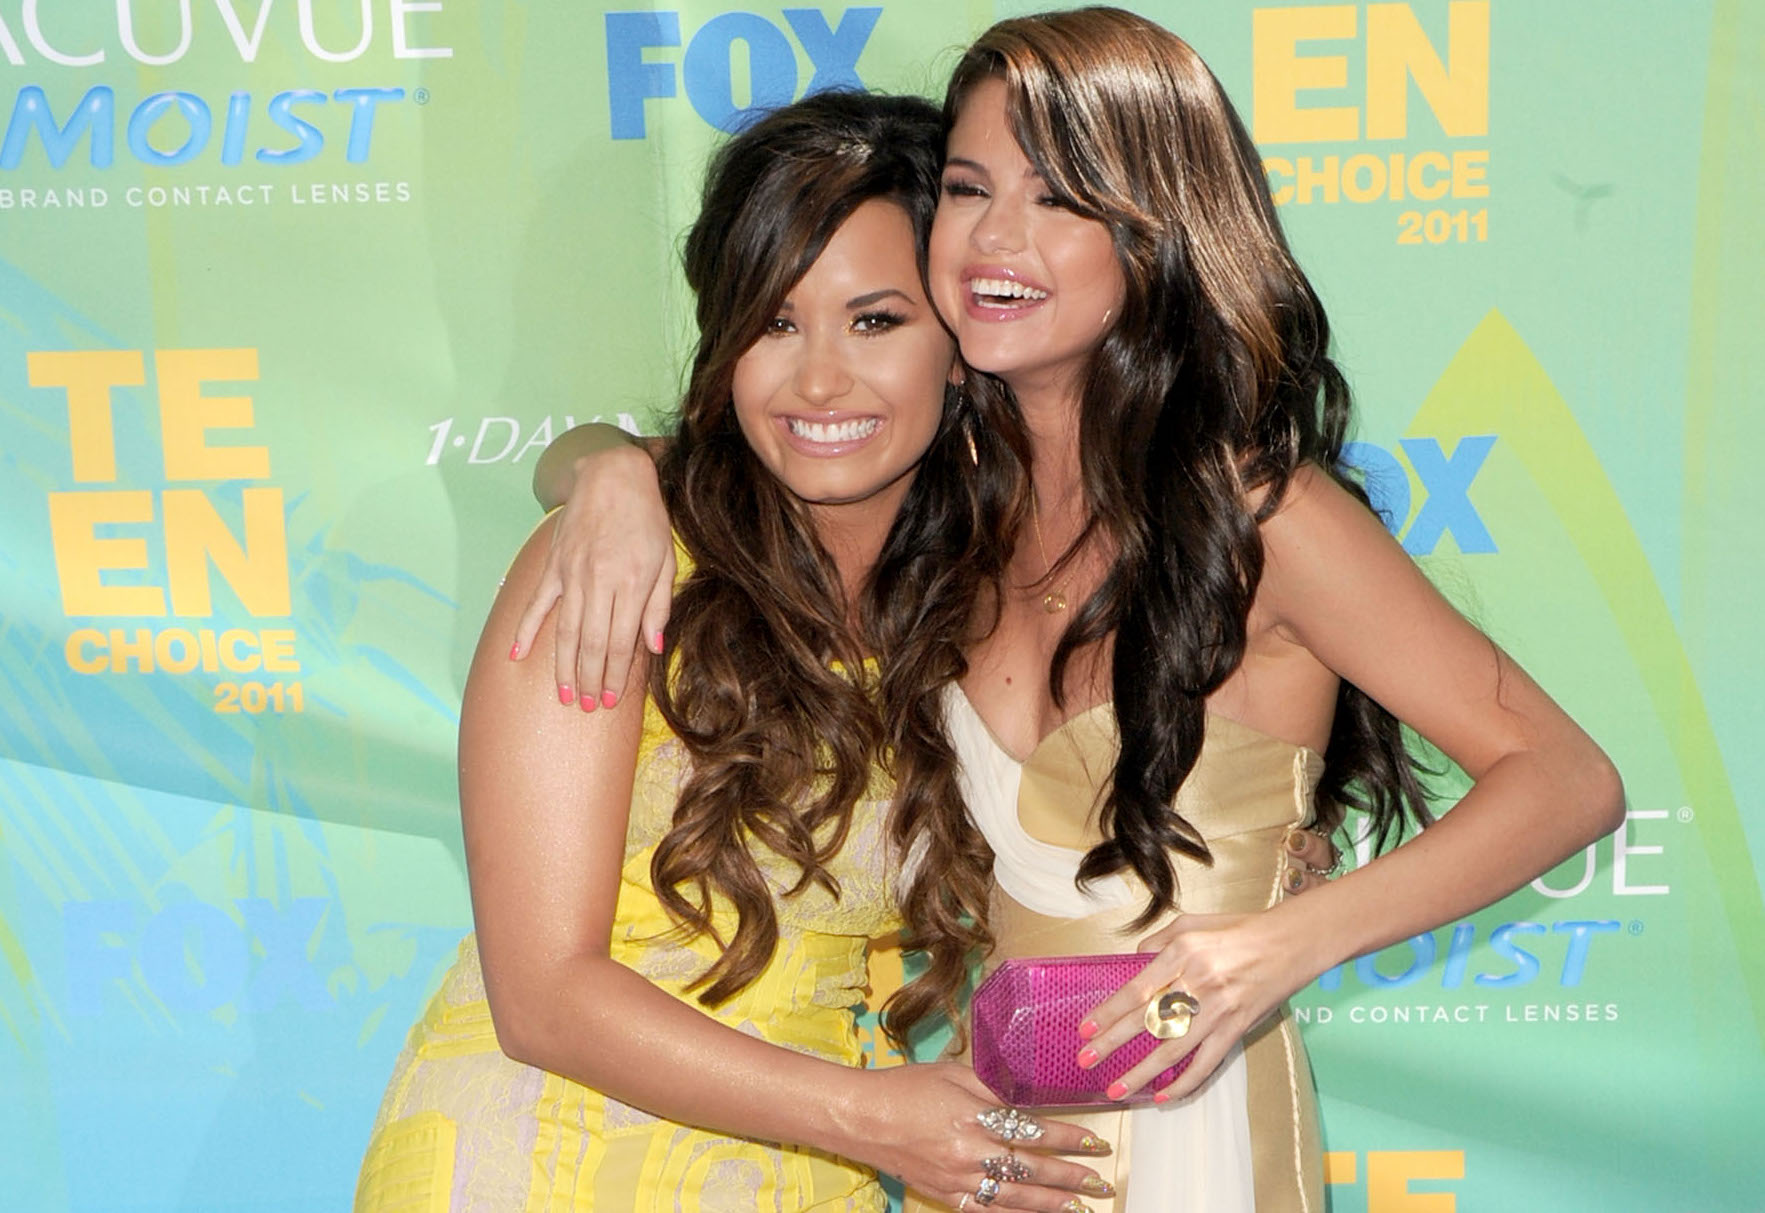 Selena Gomez said she wishes more people were like Demi Lovato, and honestly, same